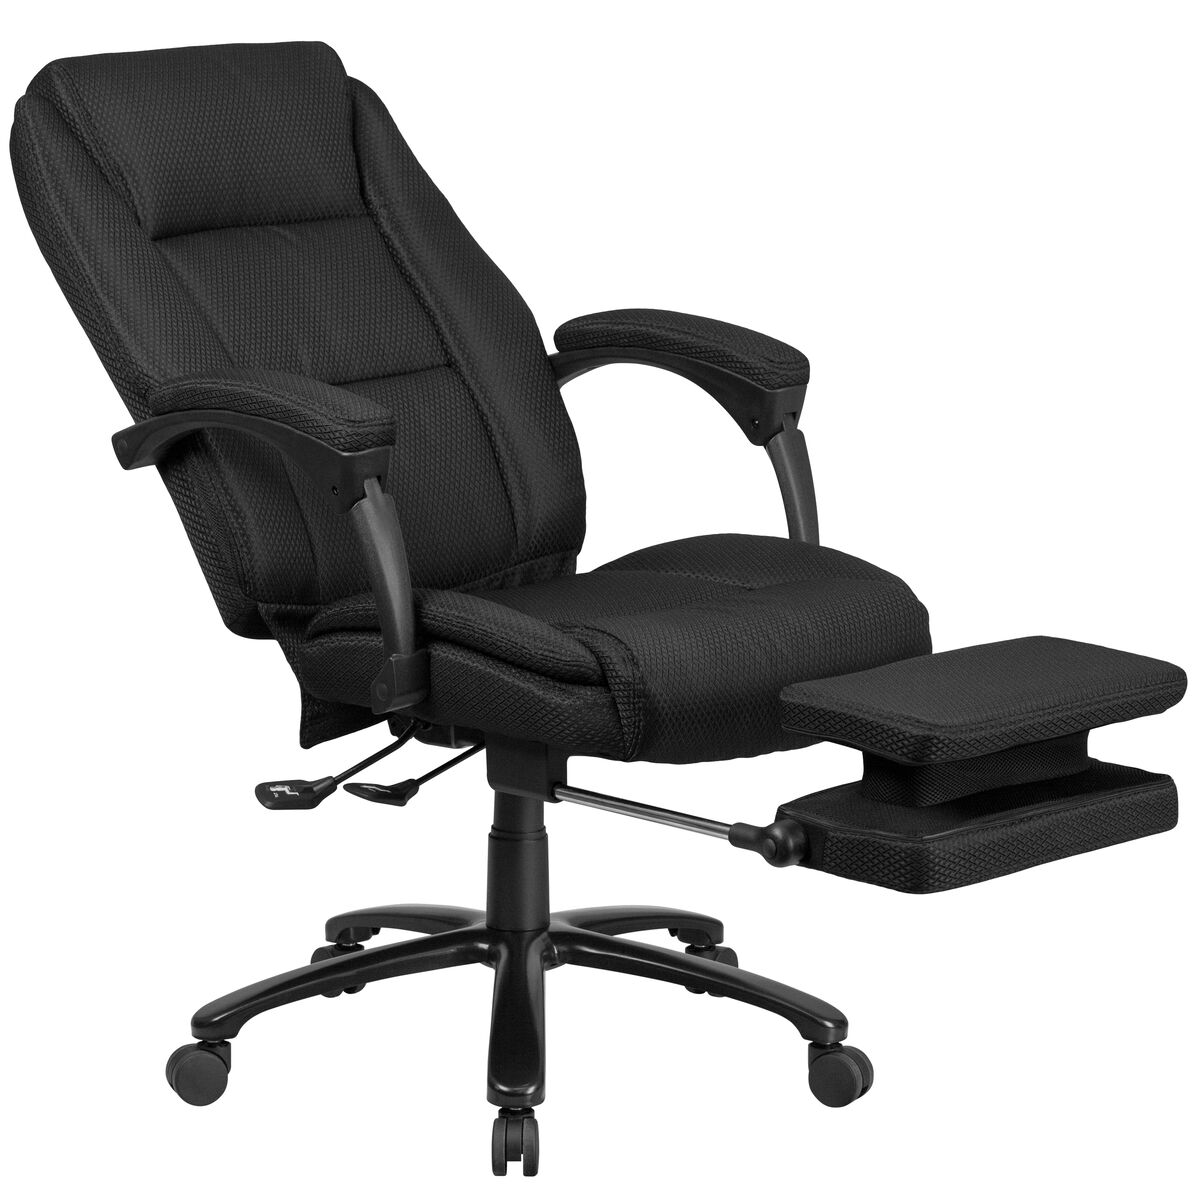 black reclining chair bt 90288h bk gg churchchairs4less com